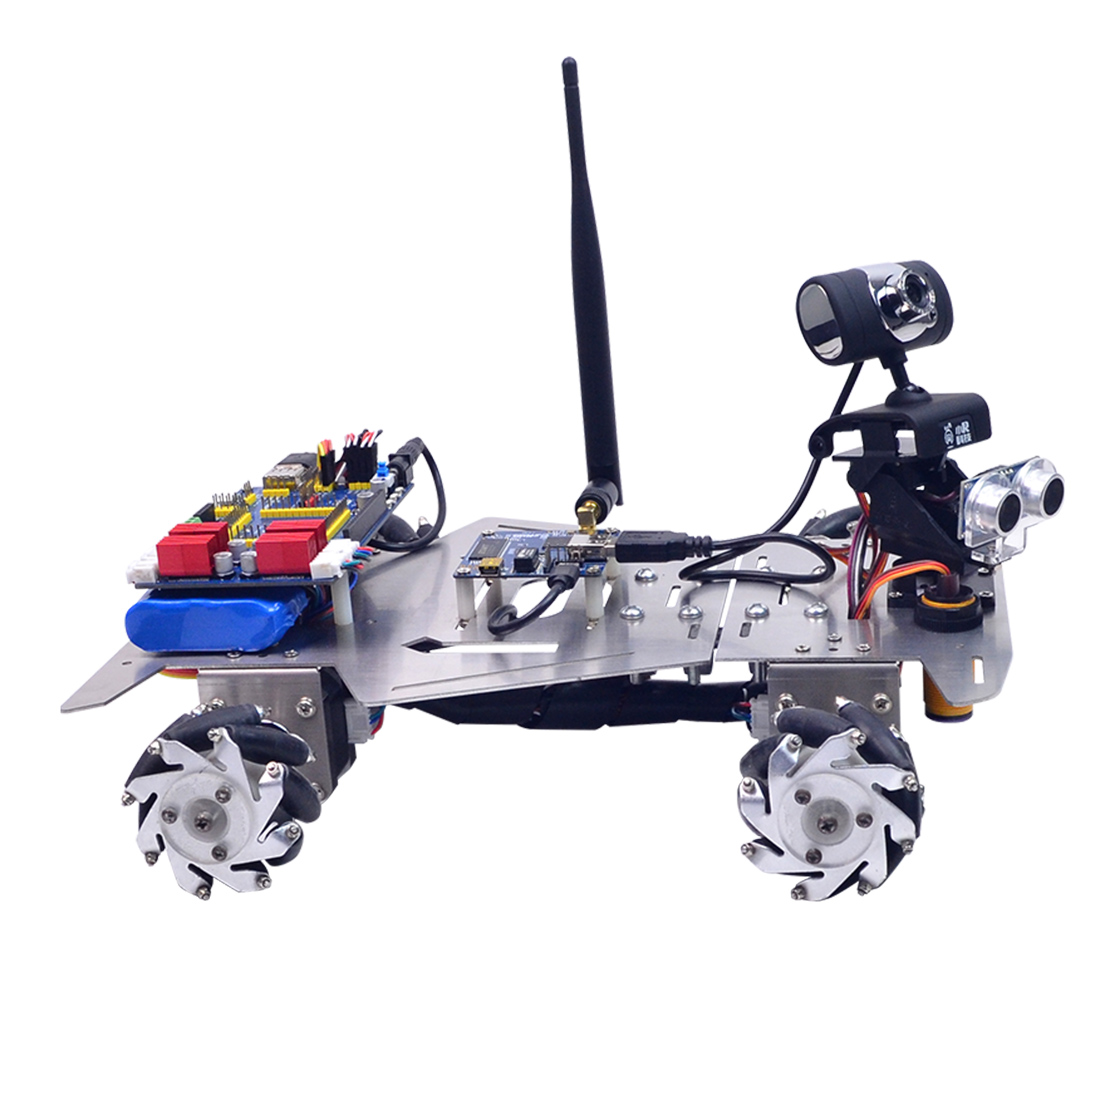 2019 New DIY Programmable Robot XR Master Omni-directional Mecanum Wheel Electronic Stem Toy Gift For Kids Adults - WIFI Version